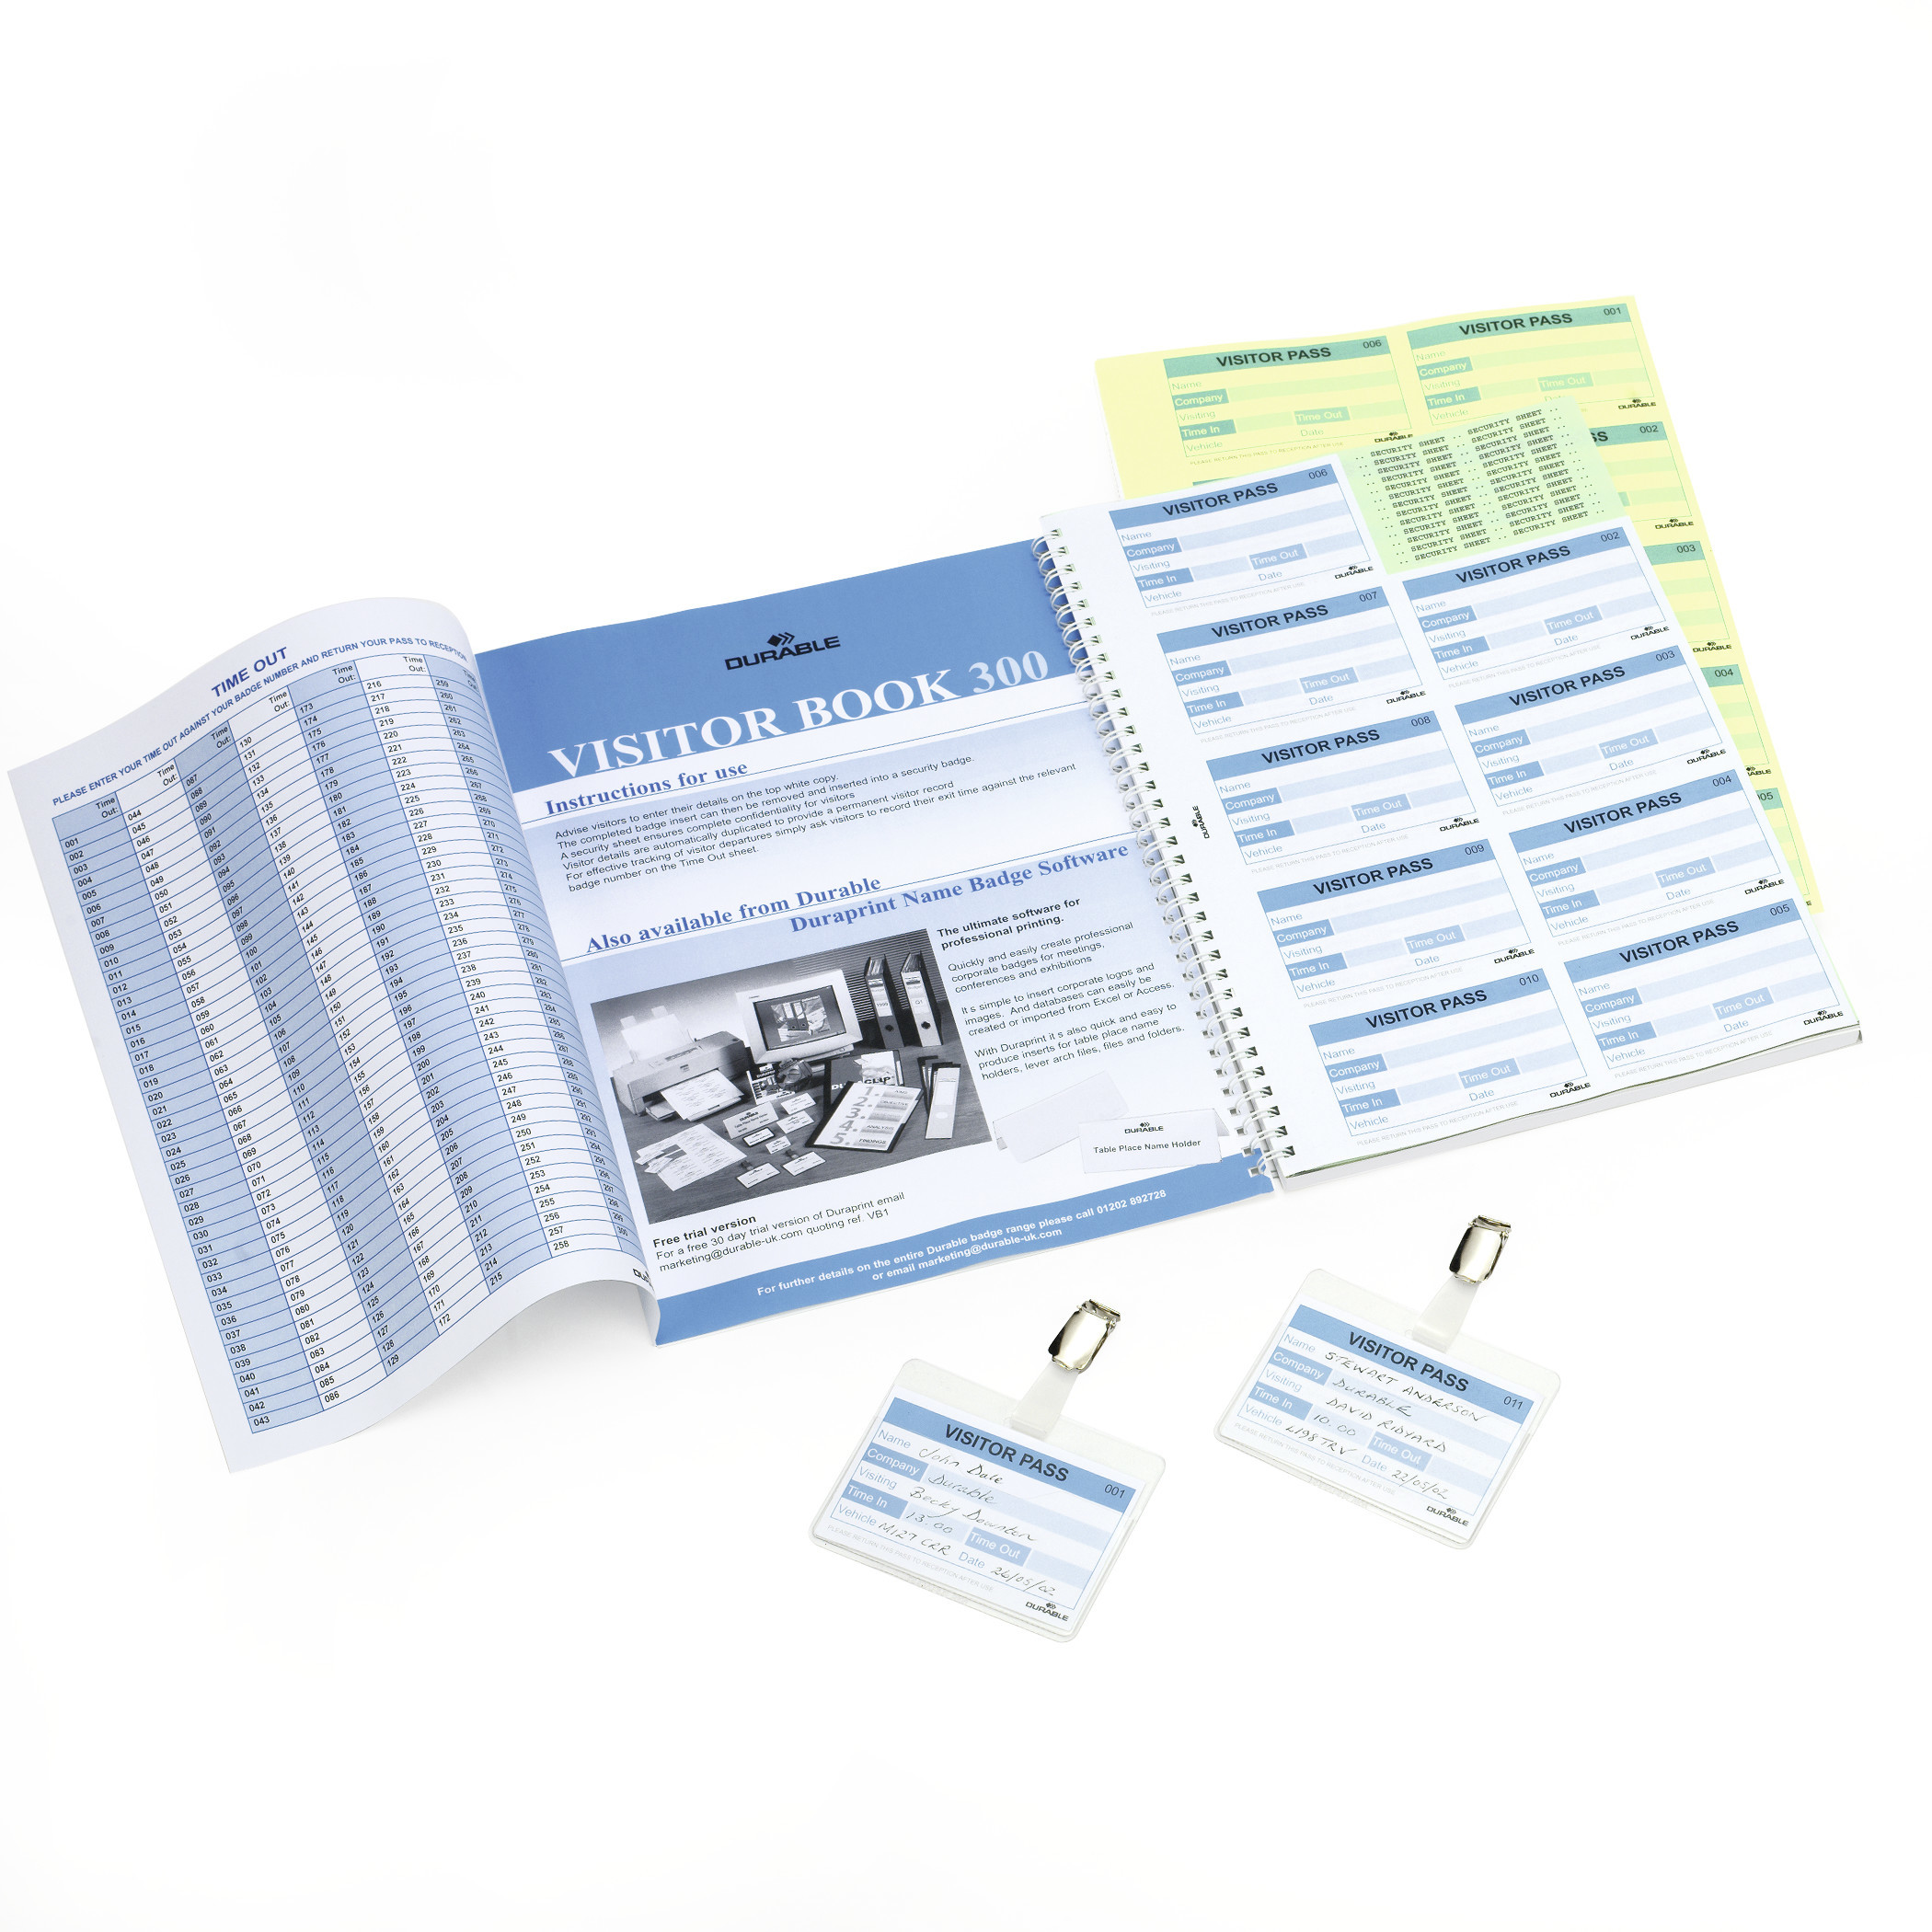 DURABLE VISITORS BOOK 300 REFILL 1 ST Z146699